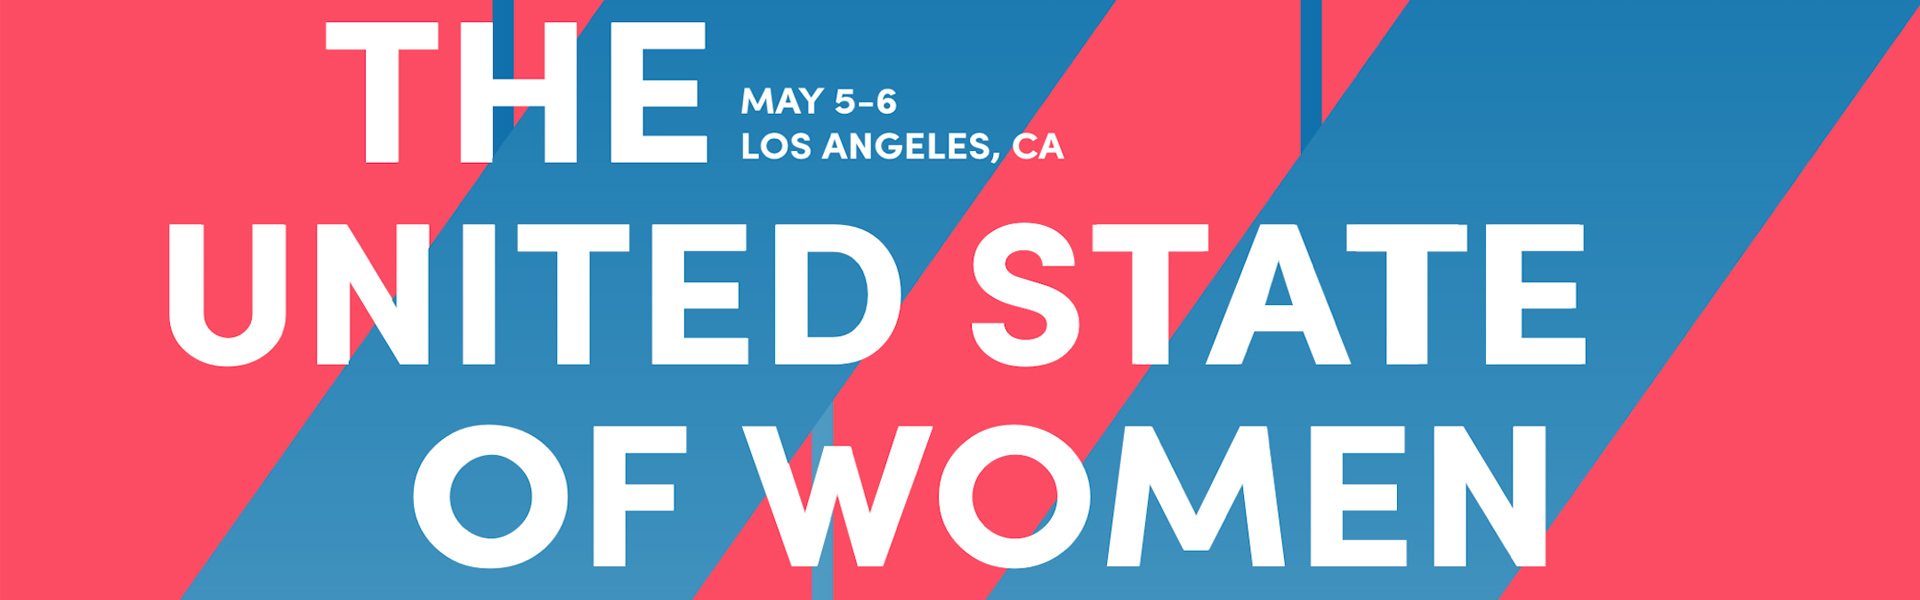 United State of Women Summit